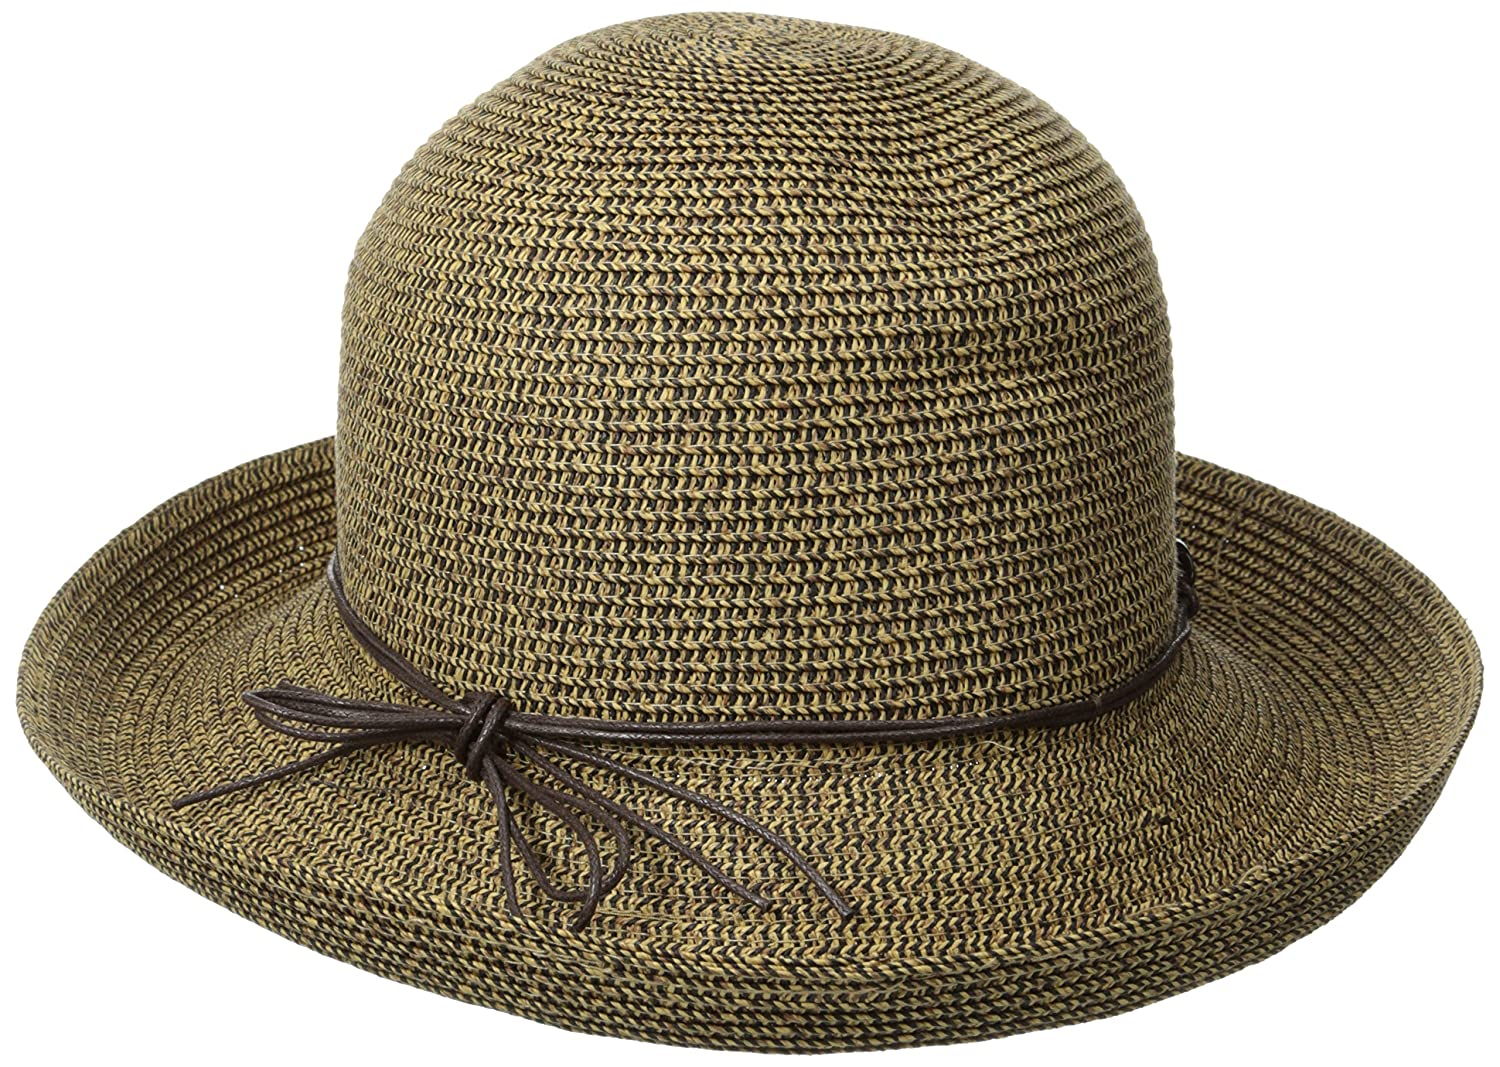 951f4bb6c38 San Diego Hat Company Women s Kettle Brim Hat with Tortoise Shell Chain